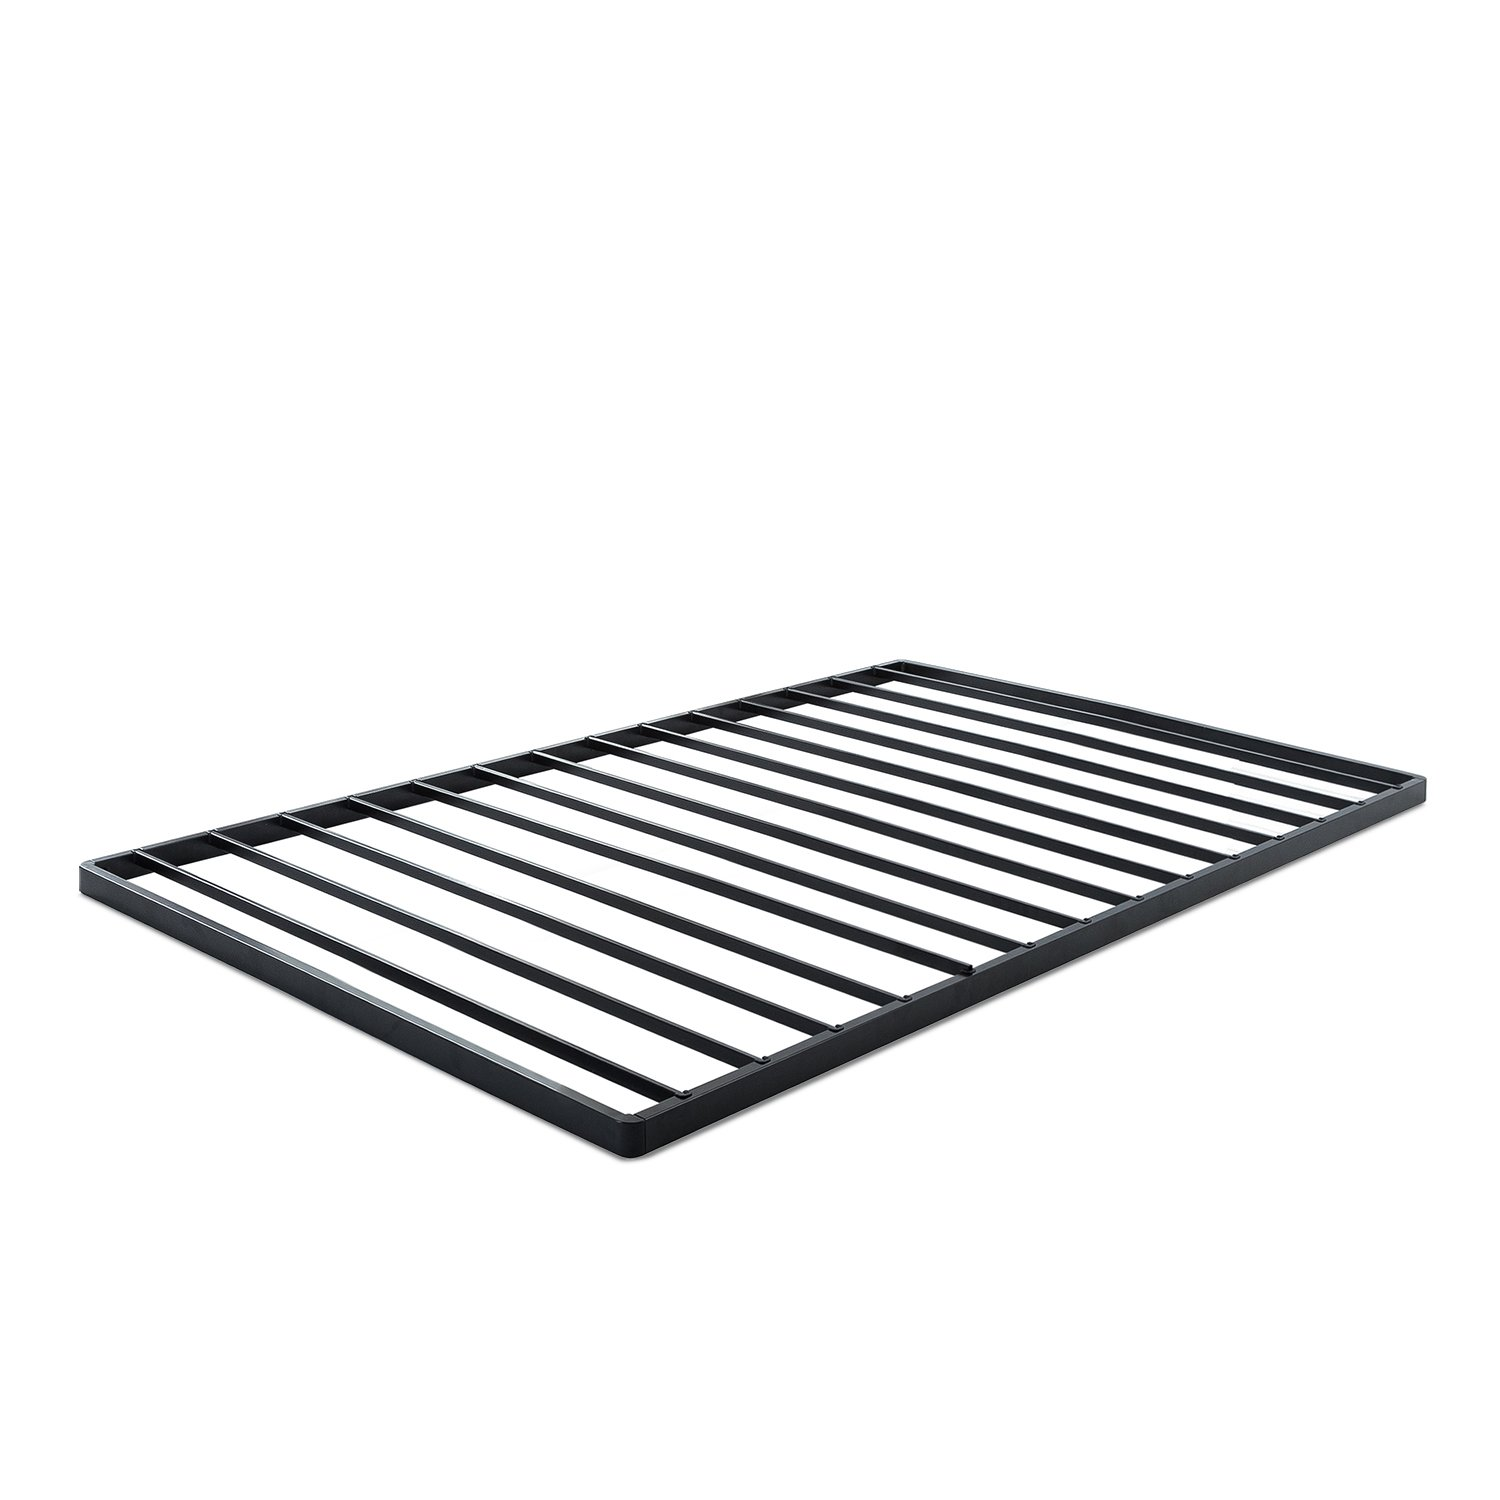 Zinus Easy Assembly Quick Lock 1.6 Inch Bunkie Board/Bed Slat Replacement, Twin by Zinus (Image #1)